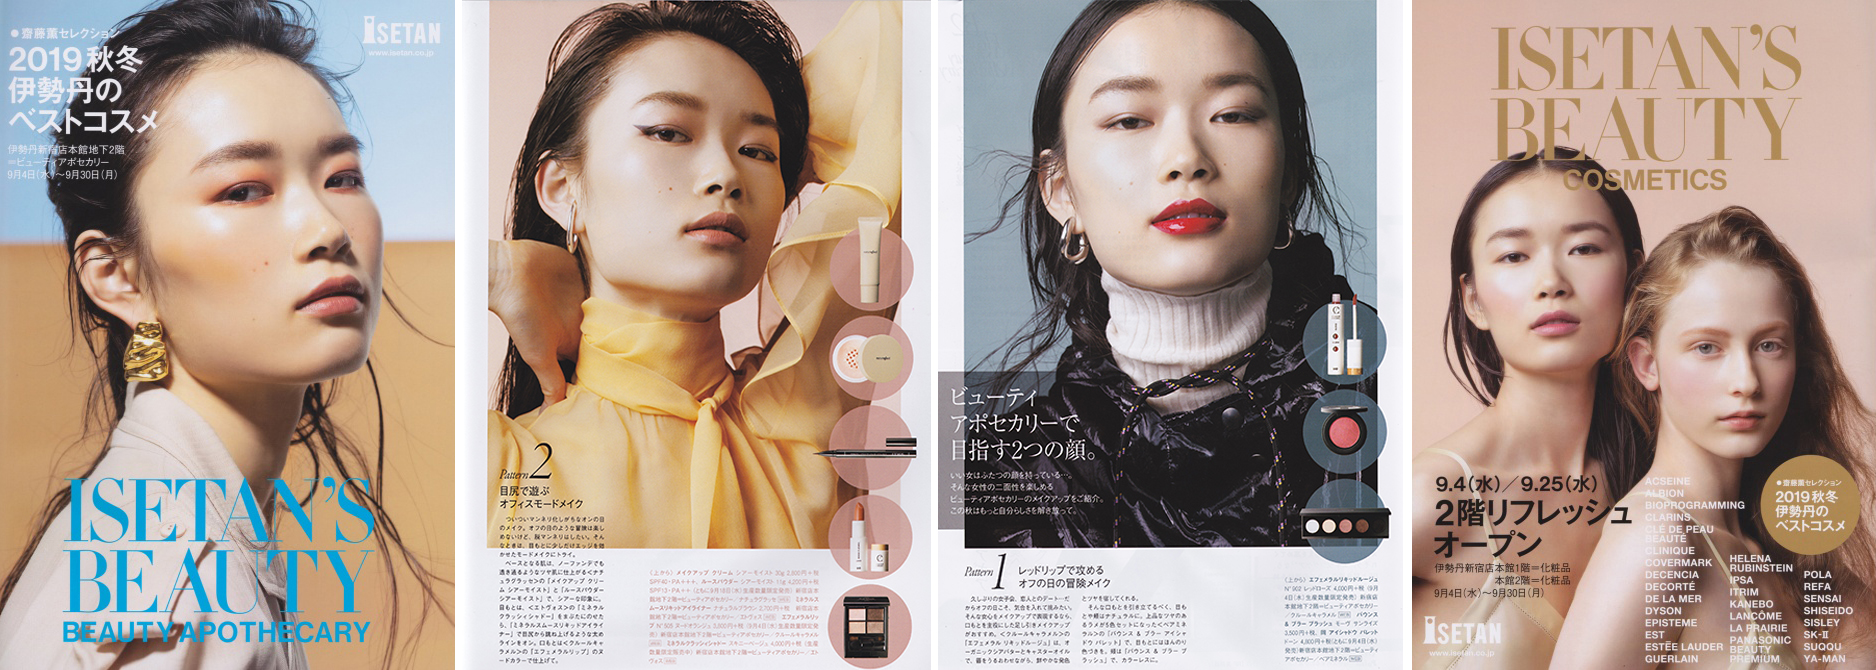 ISETAN'S BEAUTY 2019